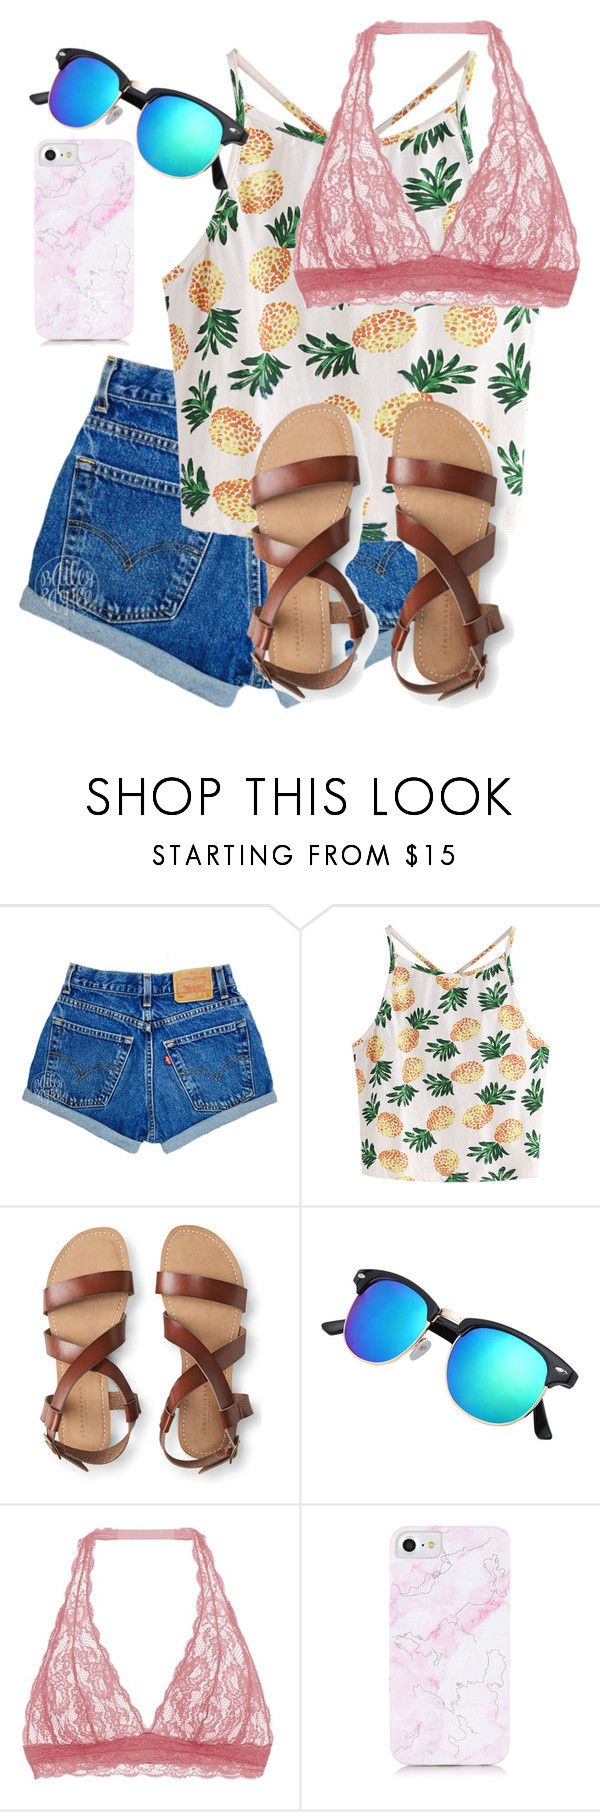 """What Should I Wear Today?"" by madisoncorell ❤ liked on Polyvore featuring WithChic, Aéropostale and Cosabella"